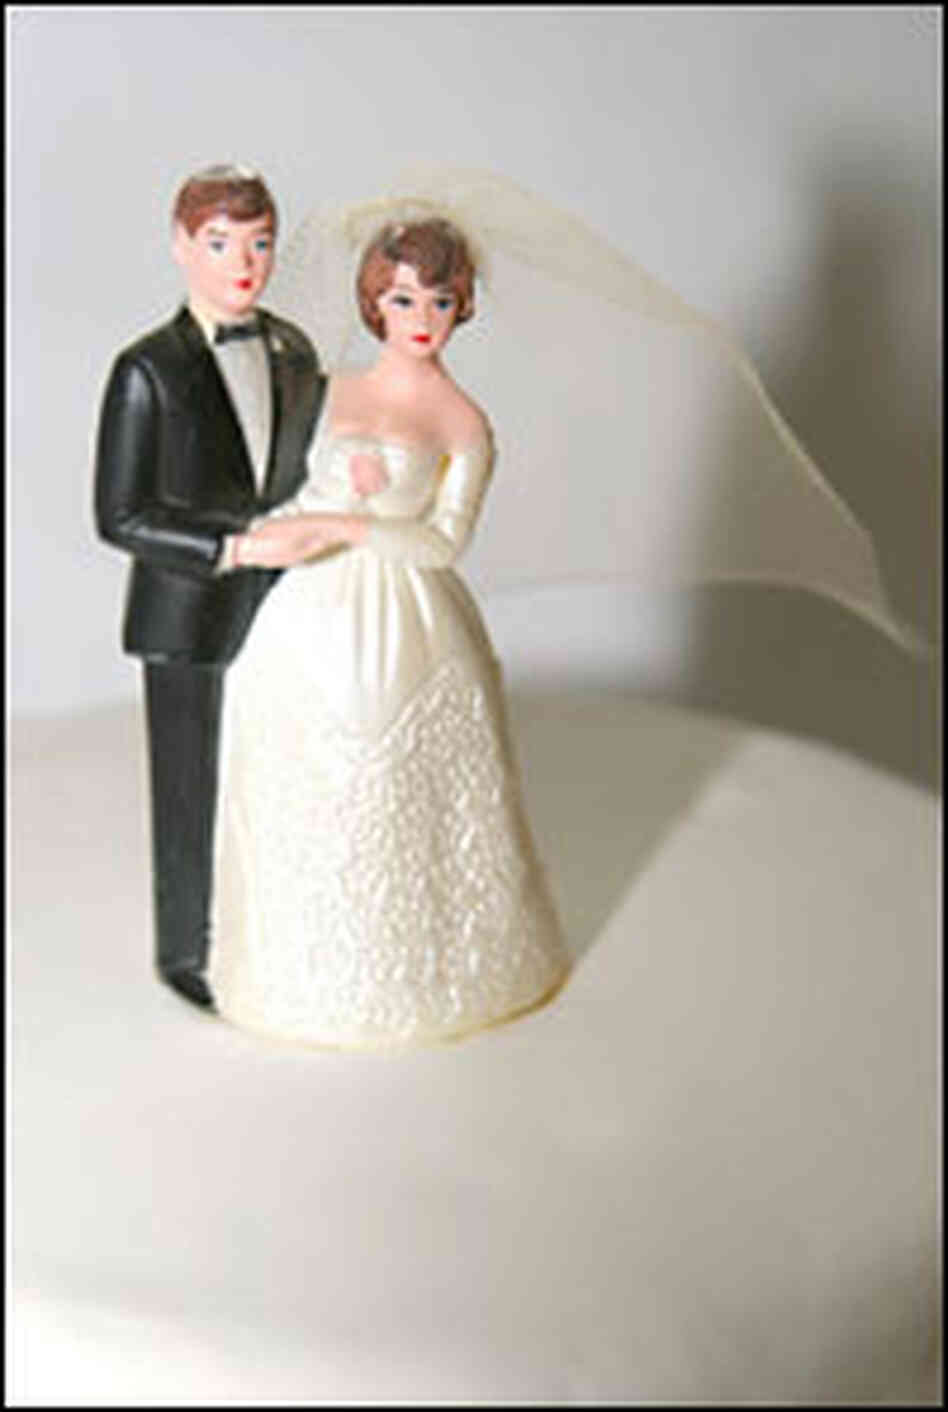 Bride and groom figurines from a wedding cake